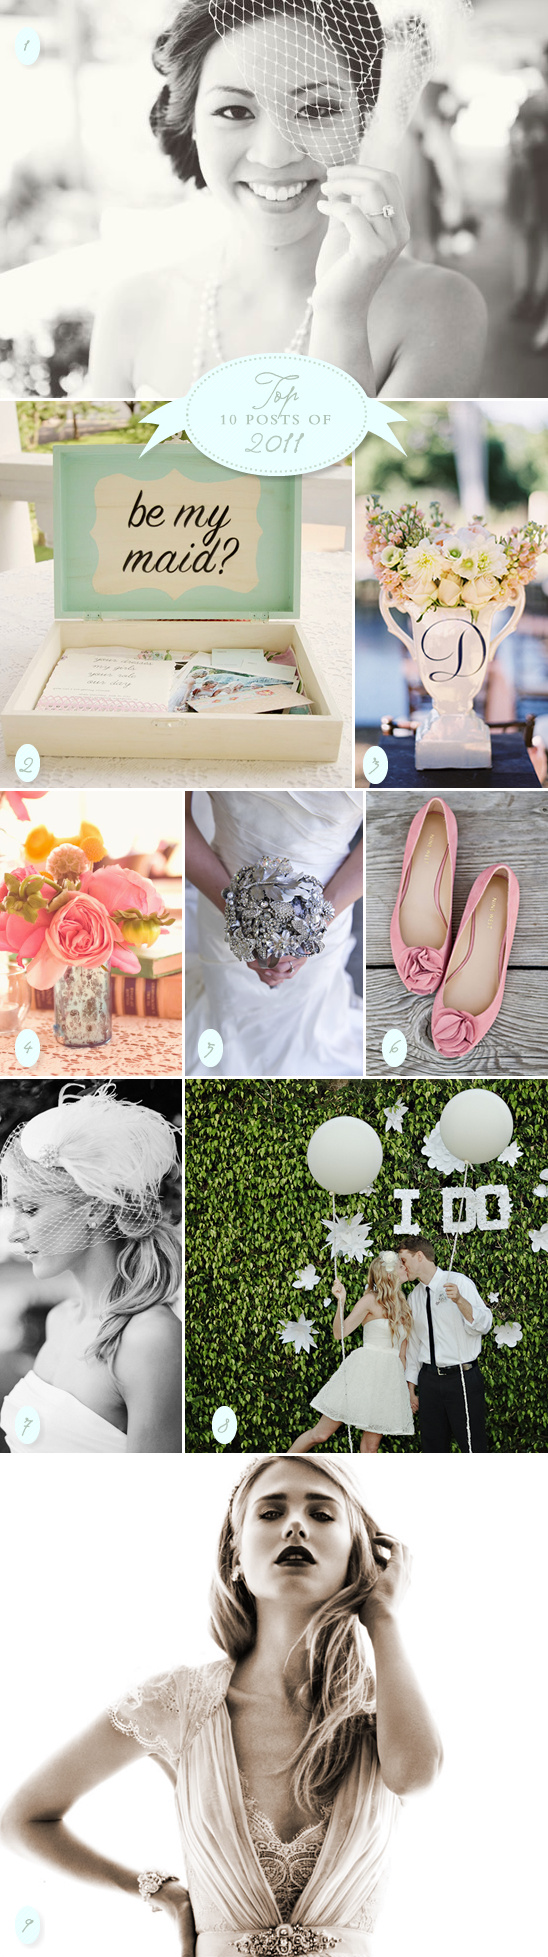 Wedding Chicks Top 10 Posts of 2011